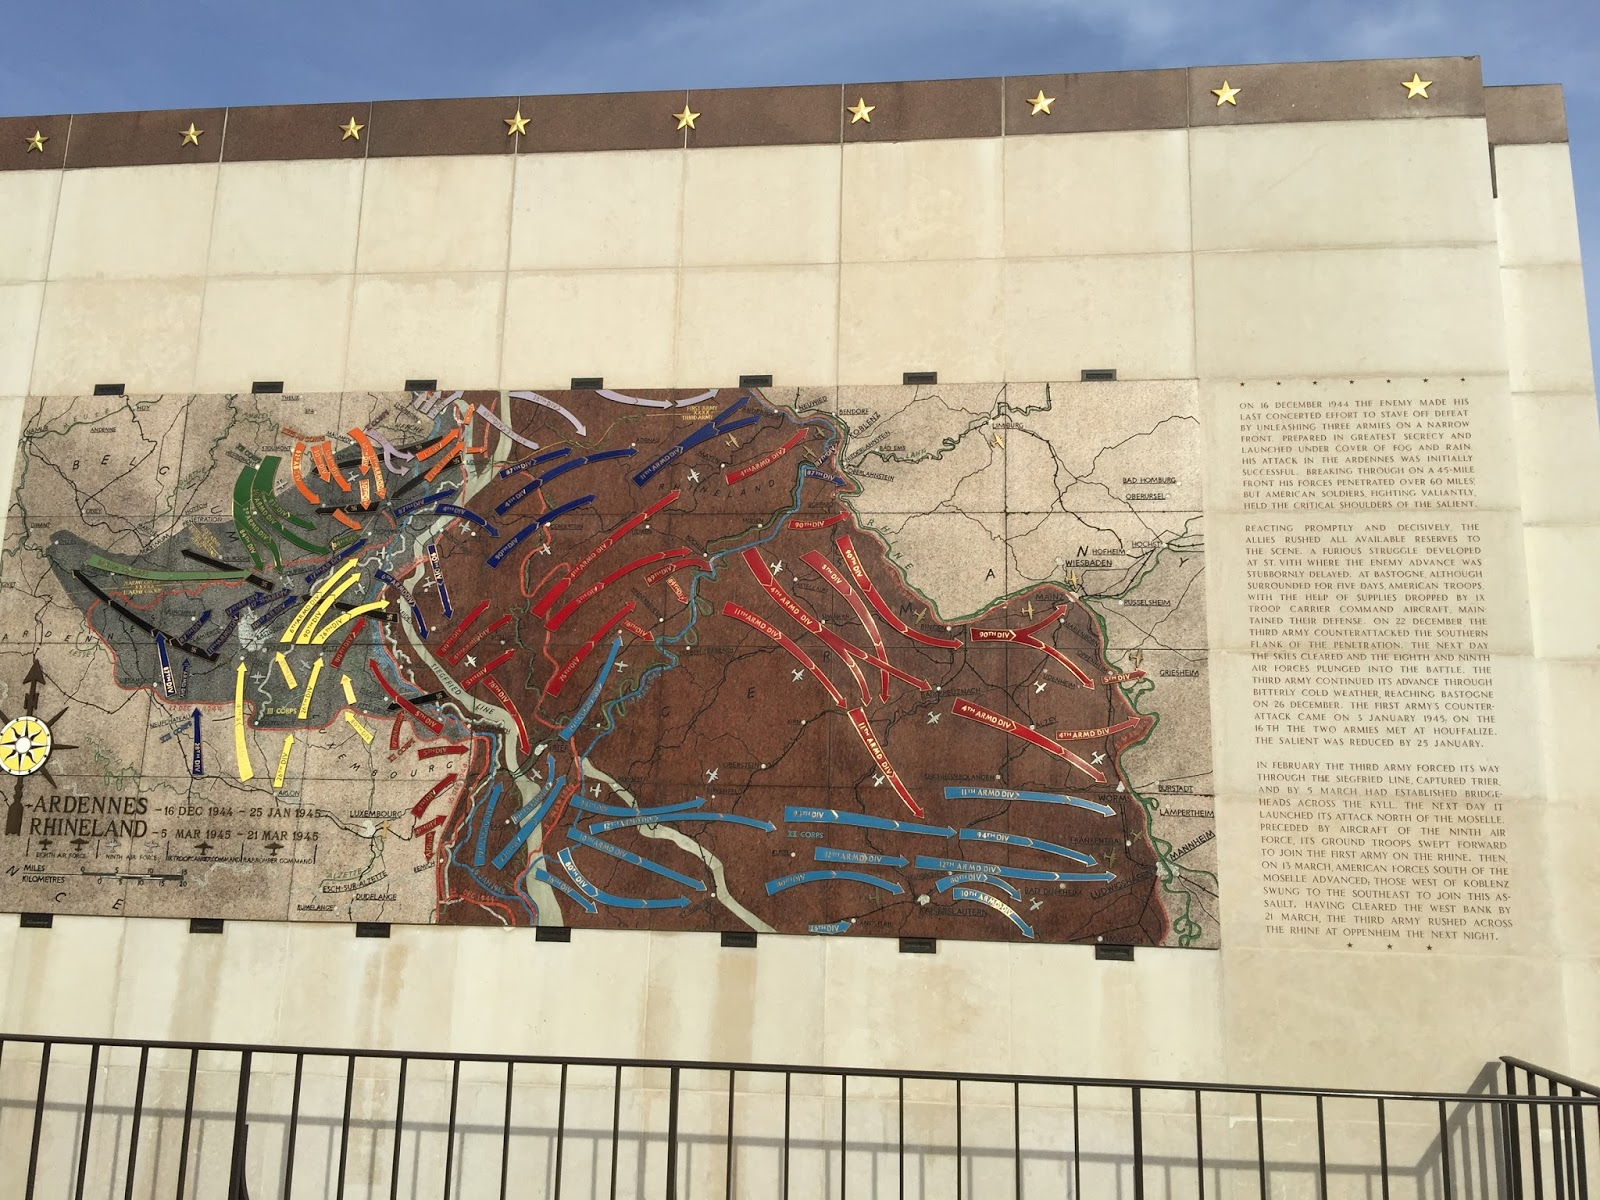 a major mural outlining many of the military campaigns to end world war ii many starting from the luxembourg region